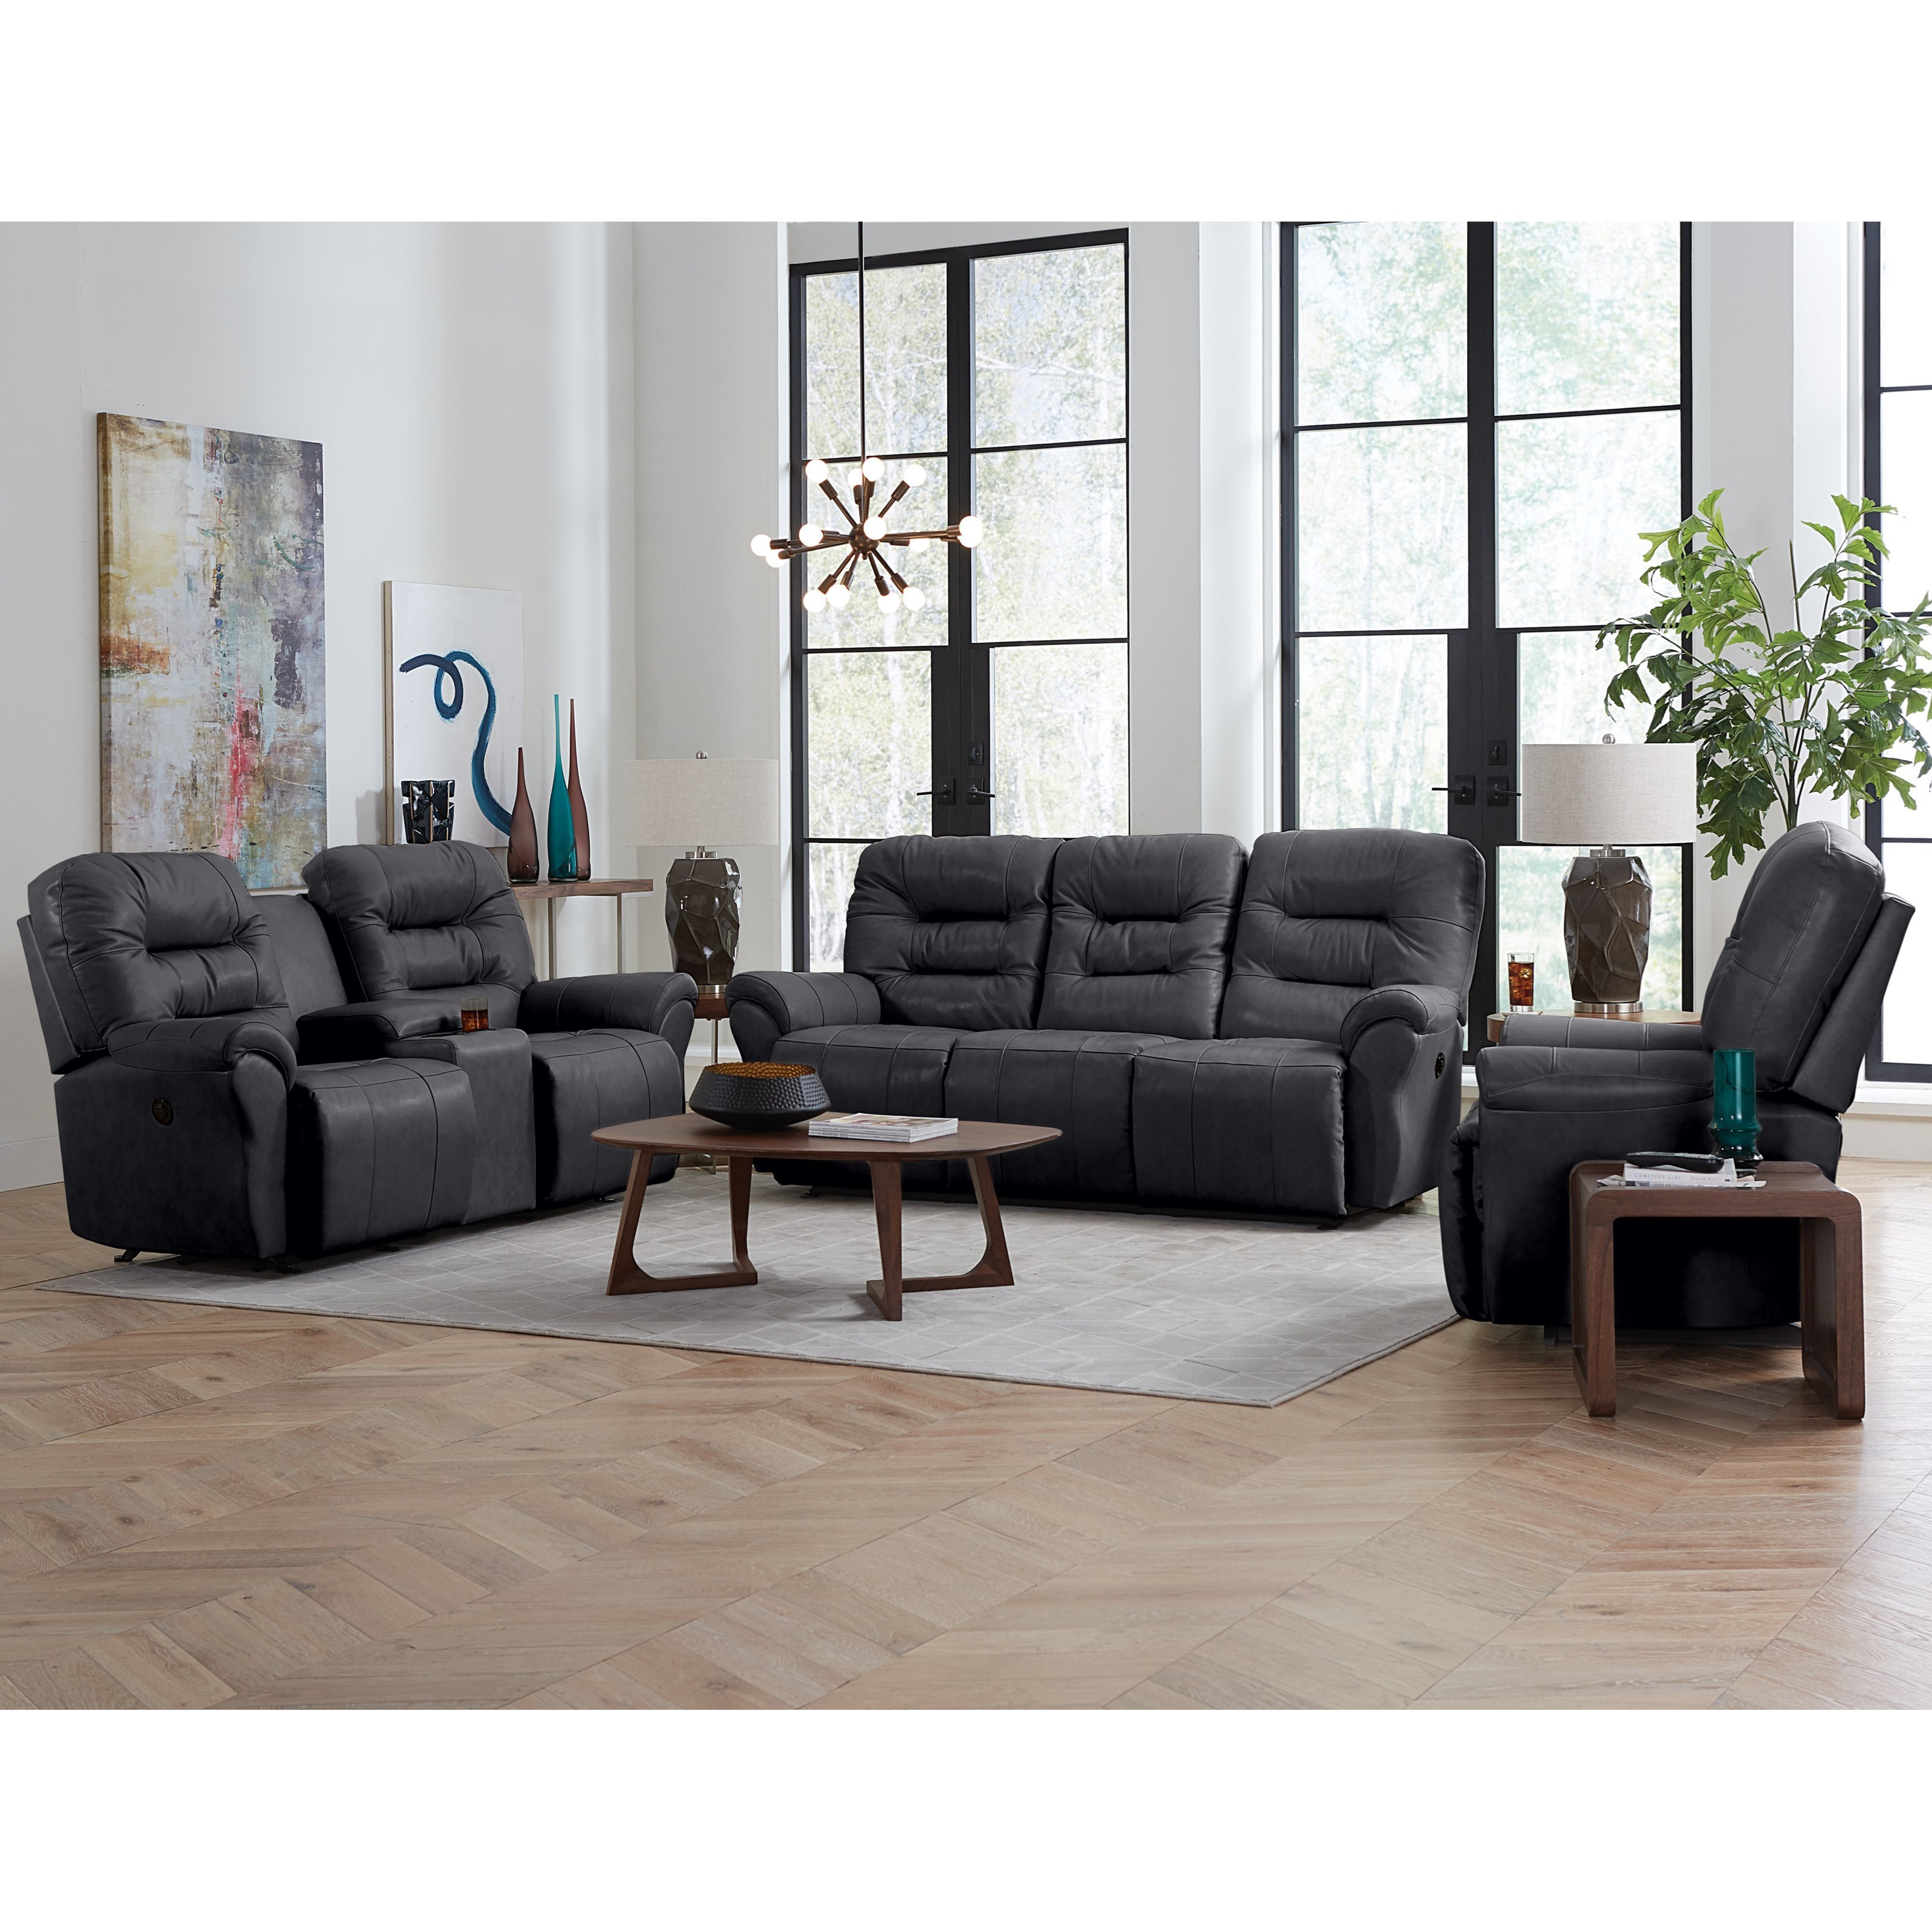 Unity Reclining Living Room Group by Best Home Furnishings at Baer's Furniture